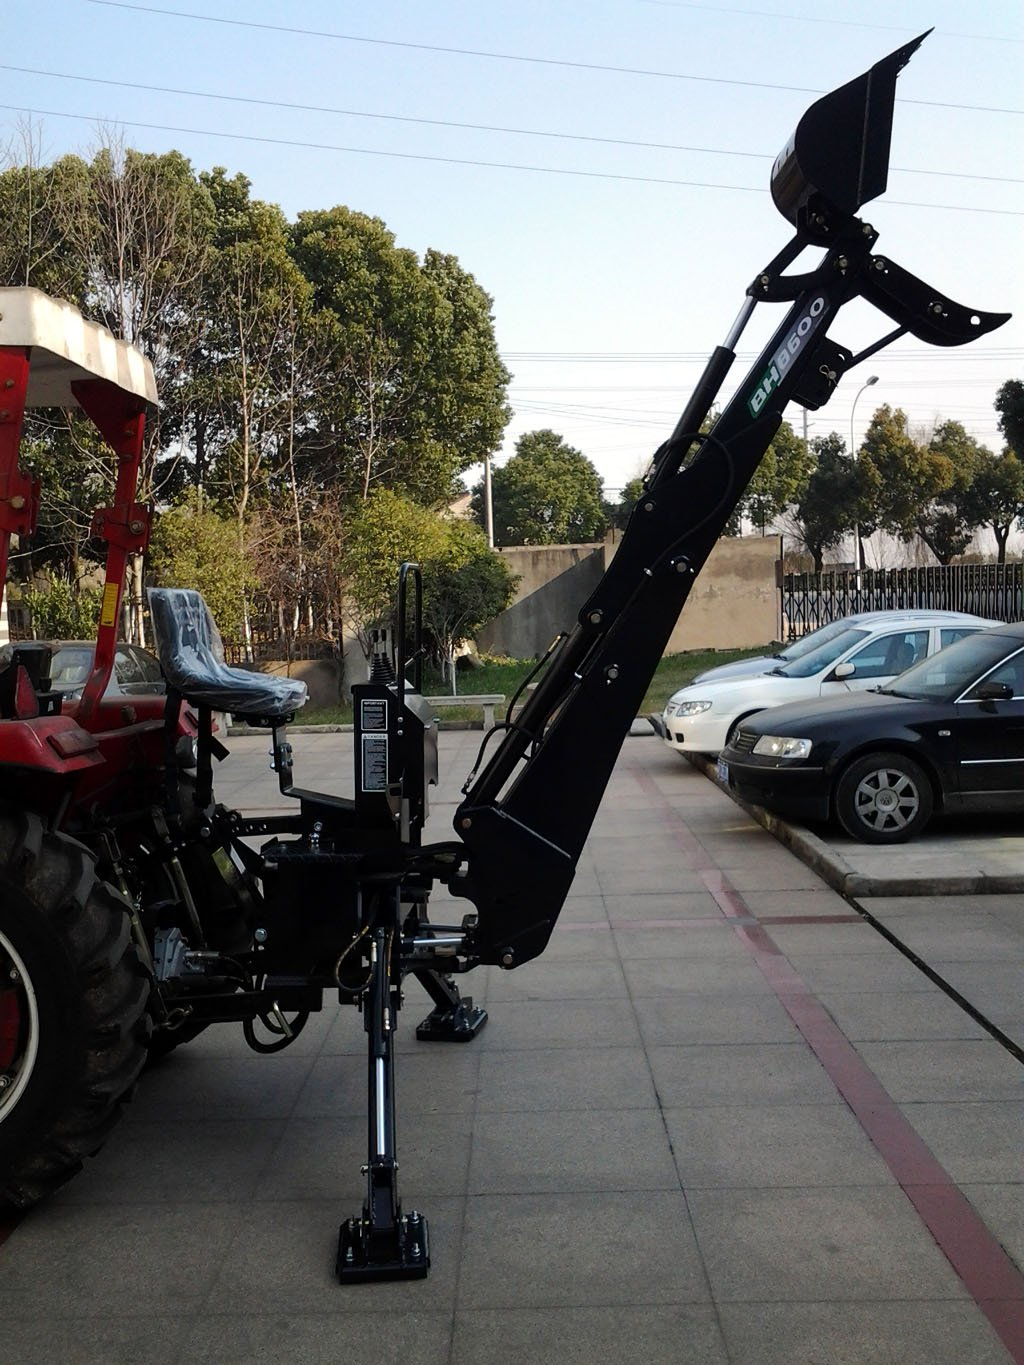 3 Point Hitch PTO BH8600 Hydraulic Farm Tractor Backhoe Attachement Excavator with Bucket, Category 1